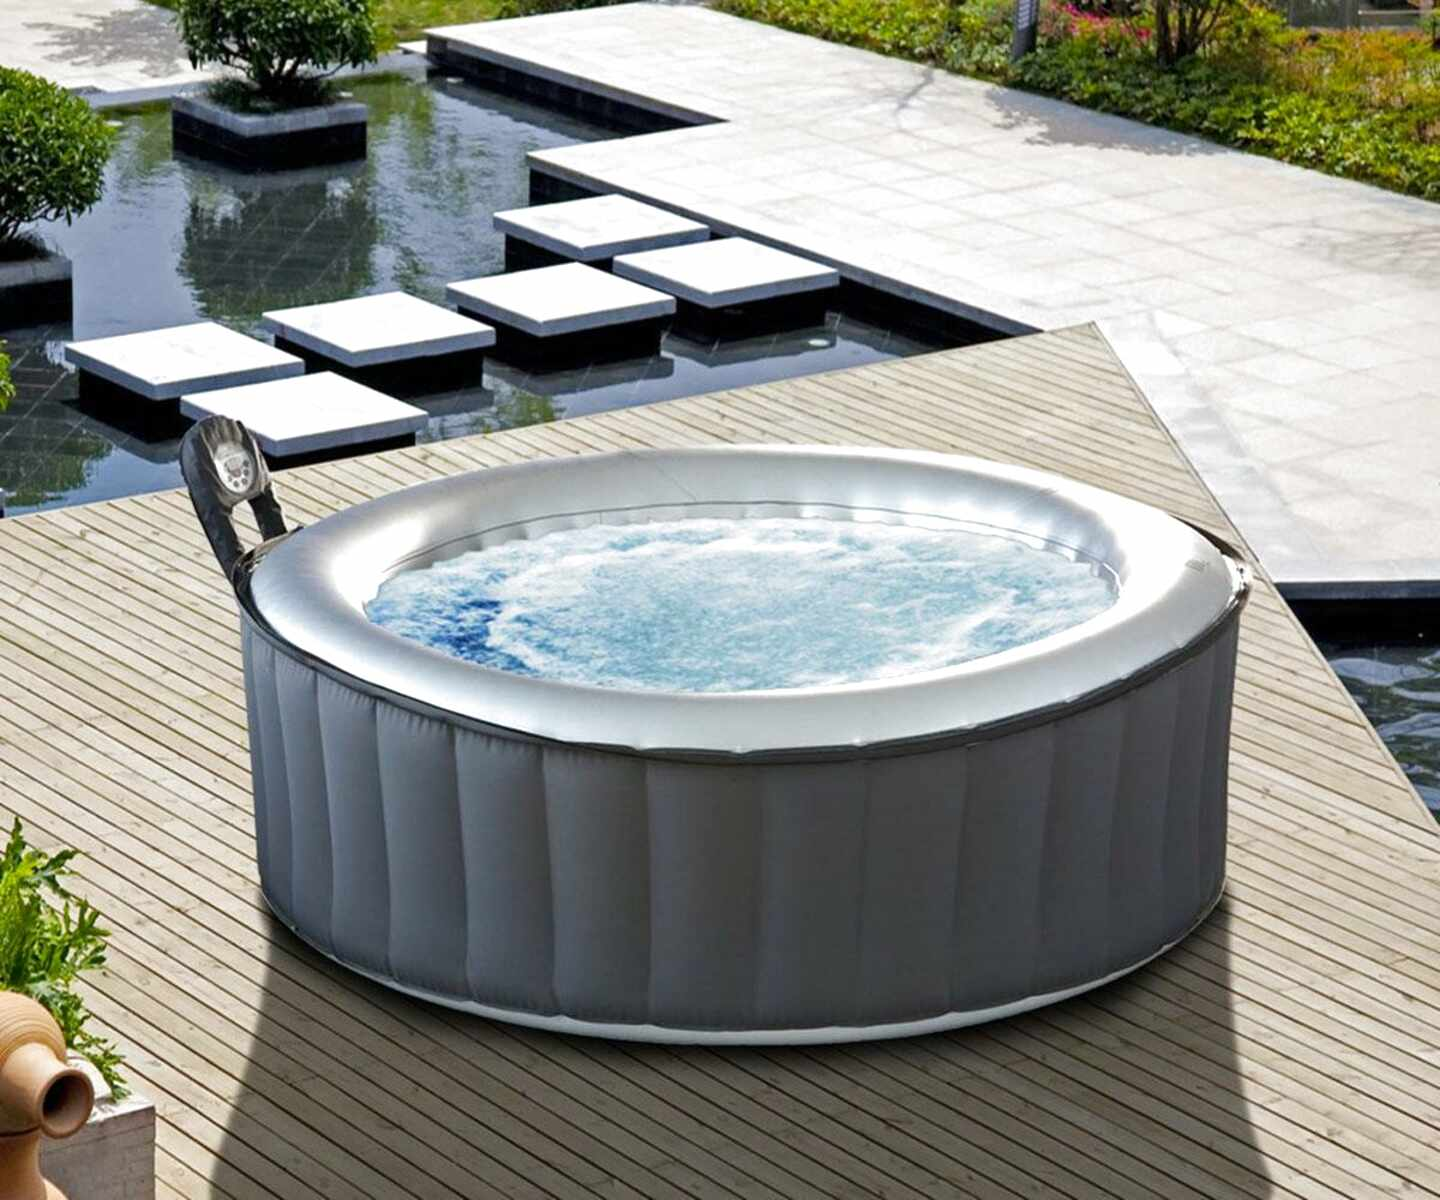 Inflatable Hot Tub for sale compared to CraigsList | Only ...